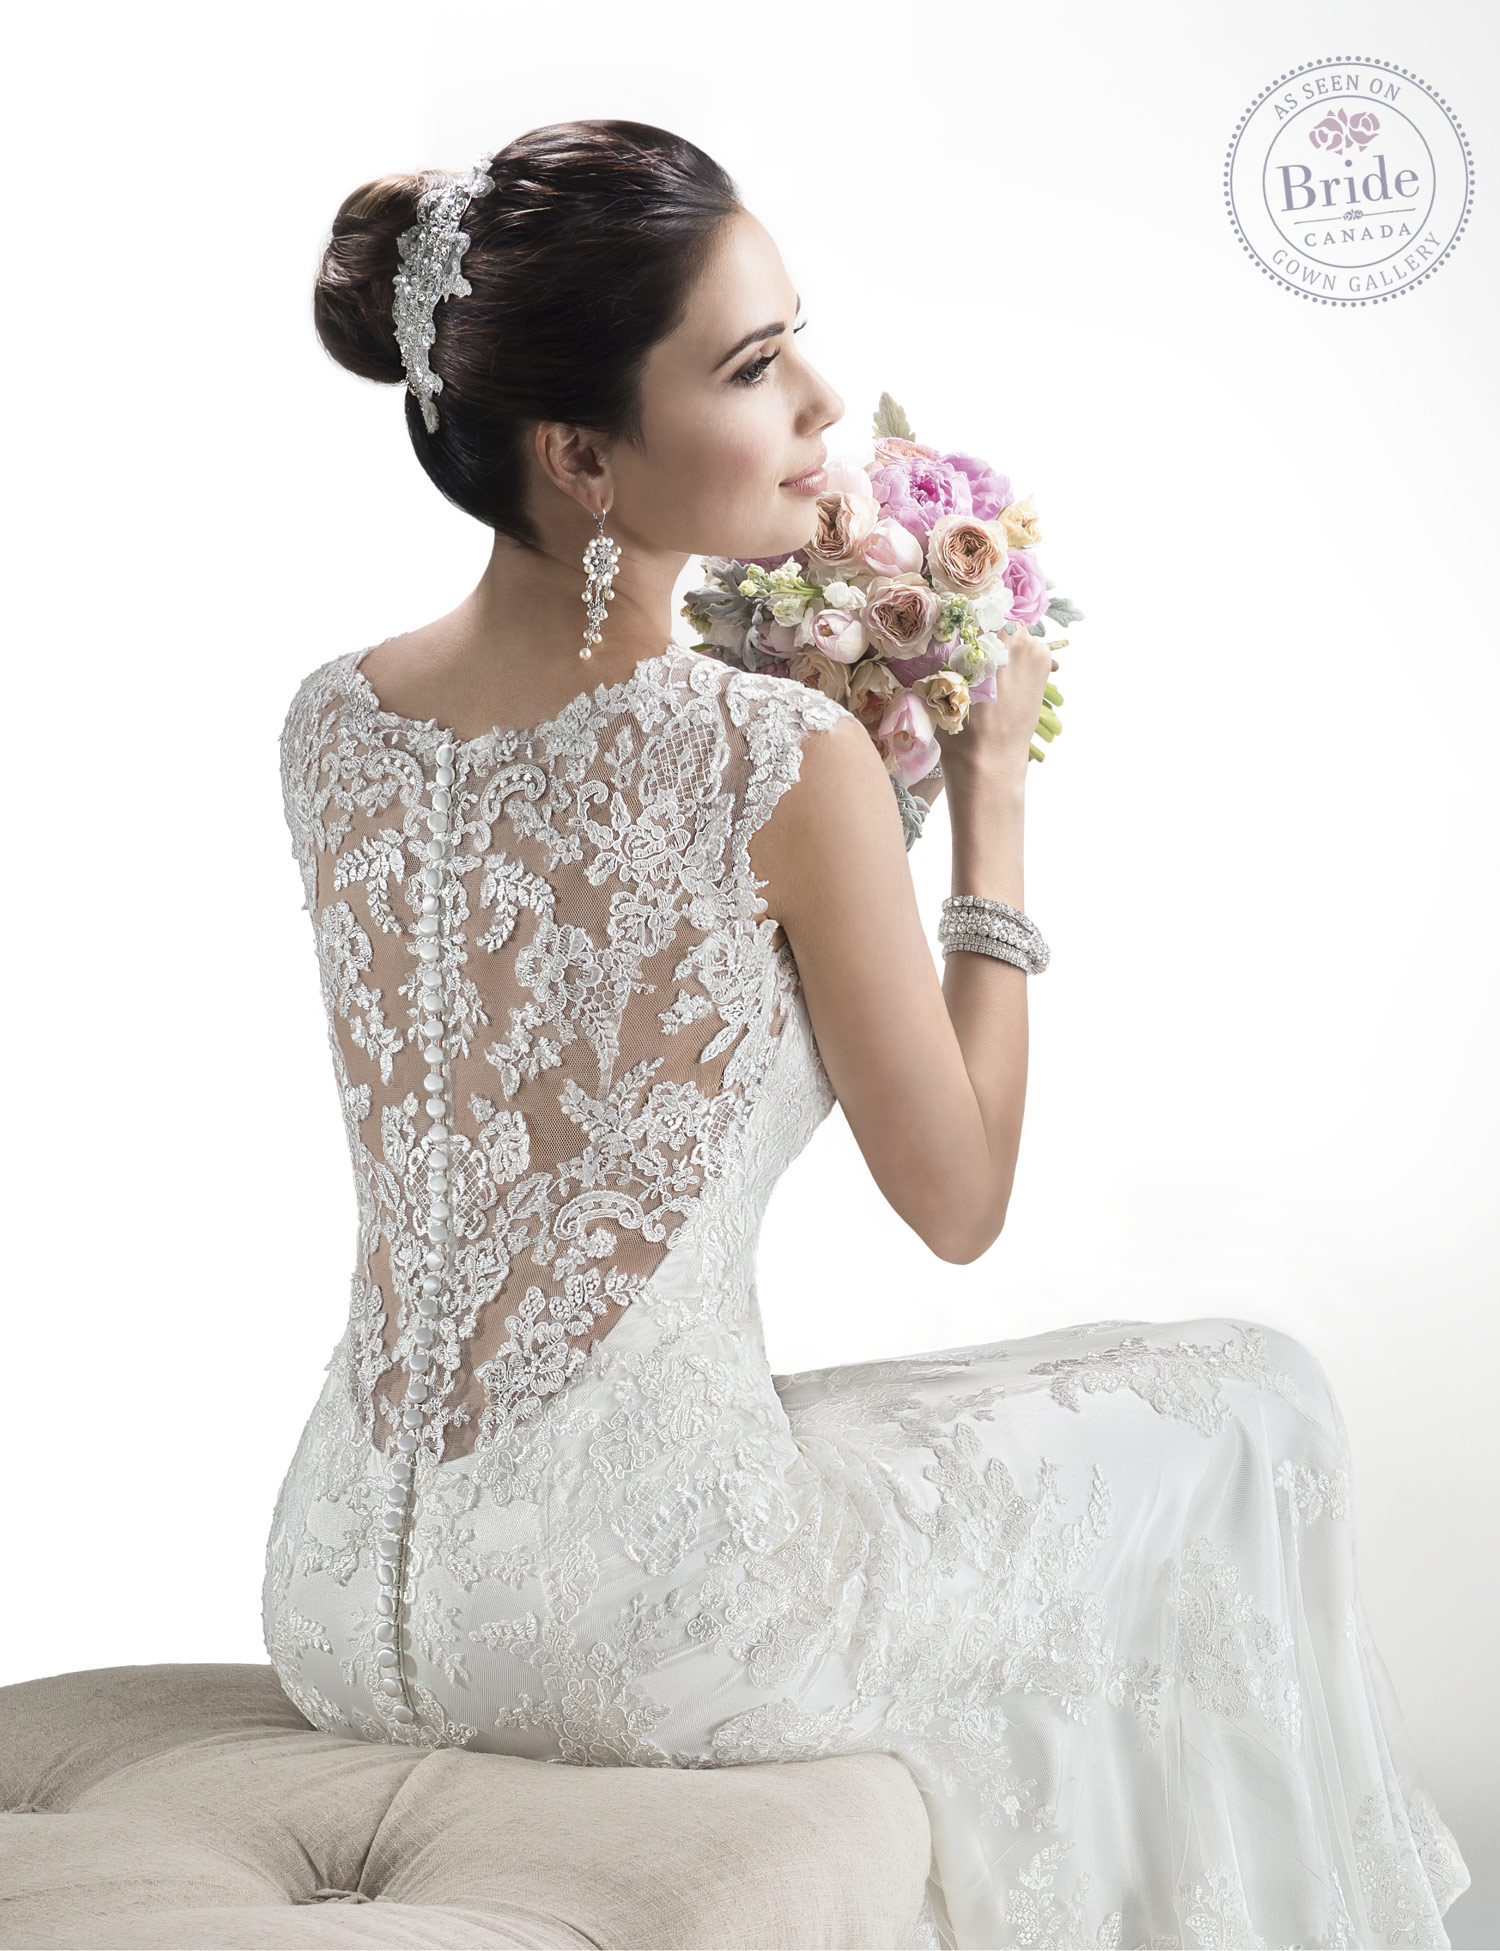 Bride Wedding Dress Reviews October 2014